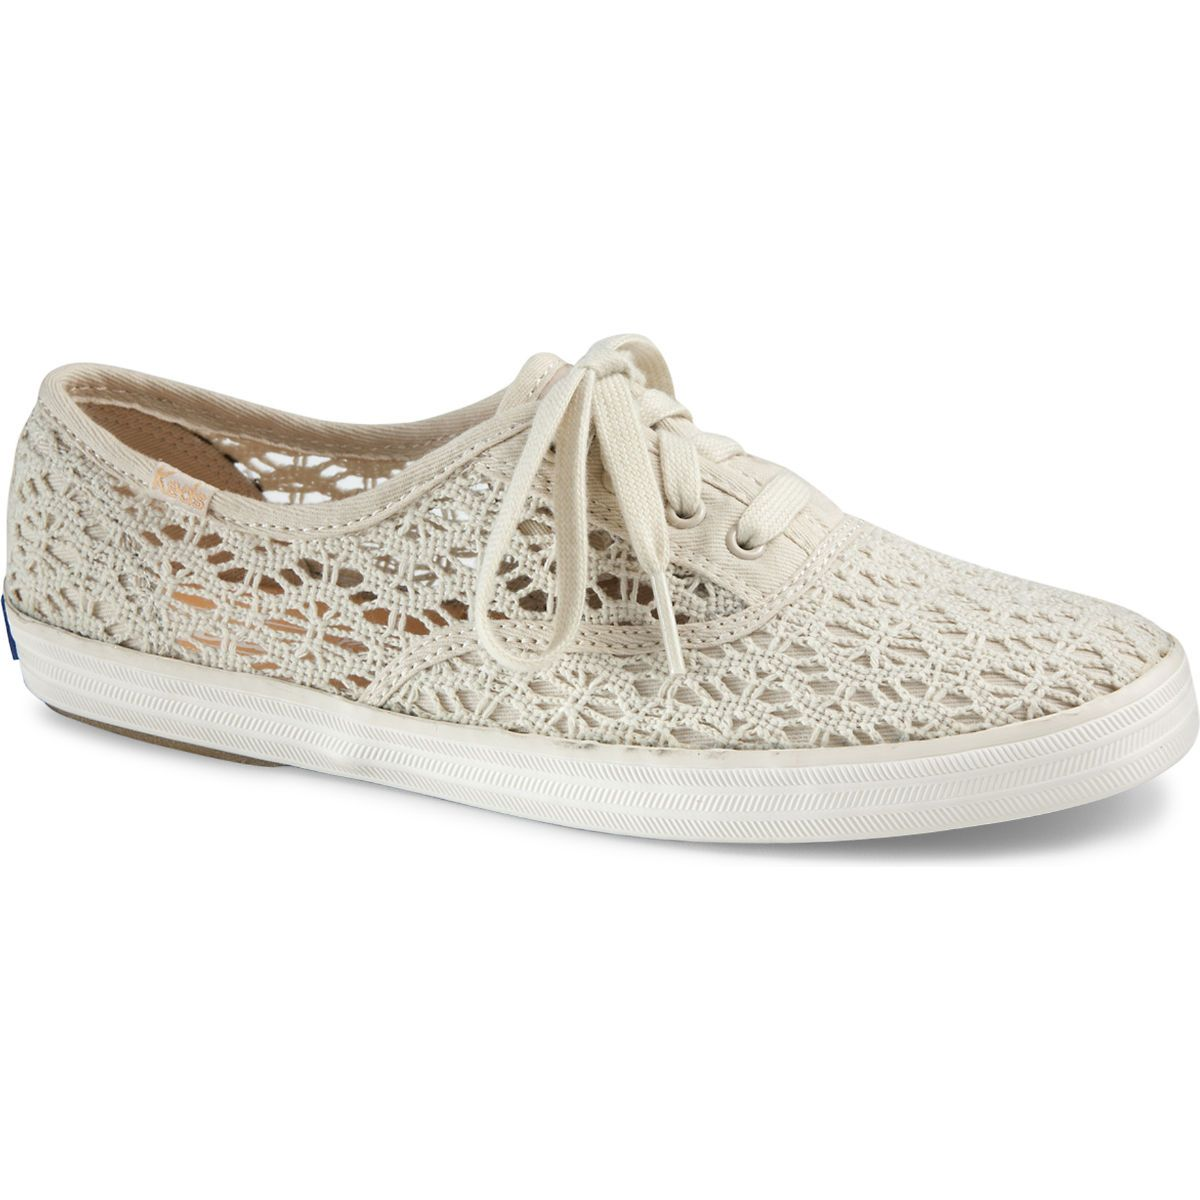 380d17ab987 Women - Champion Crochet - Natural